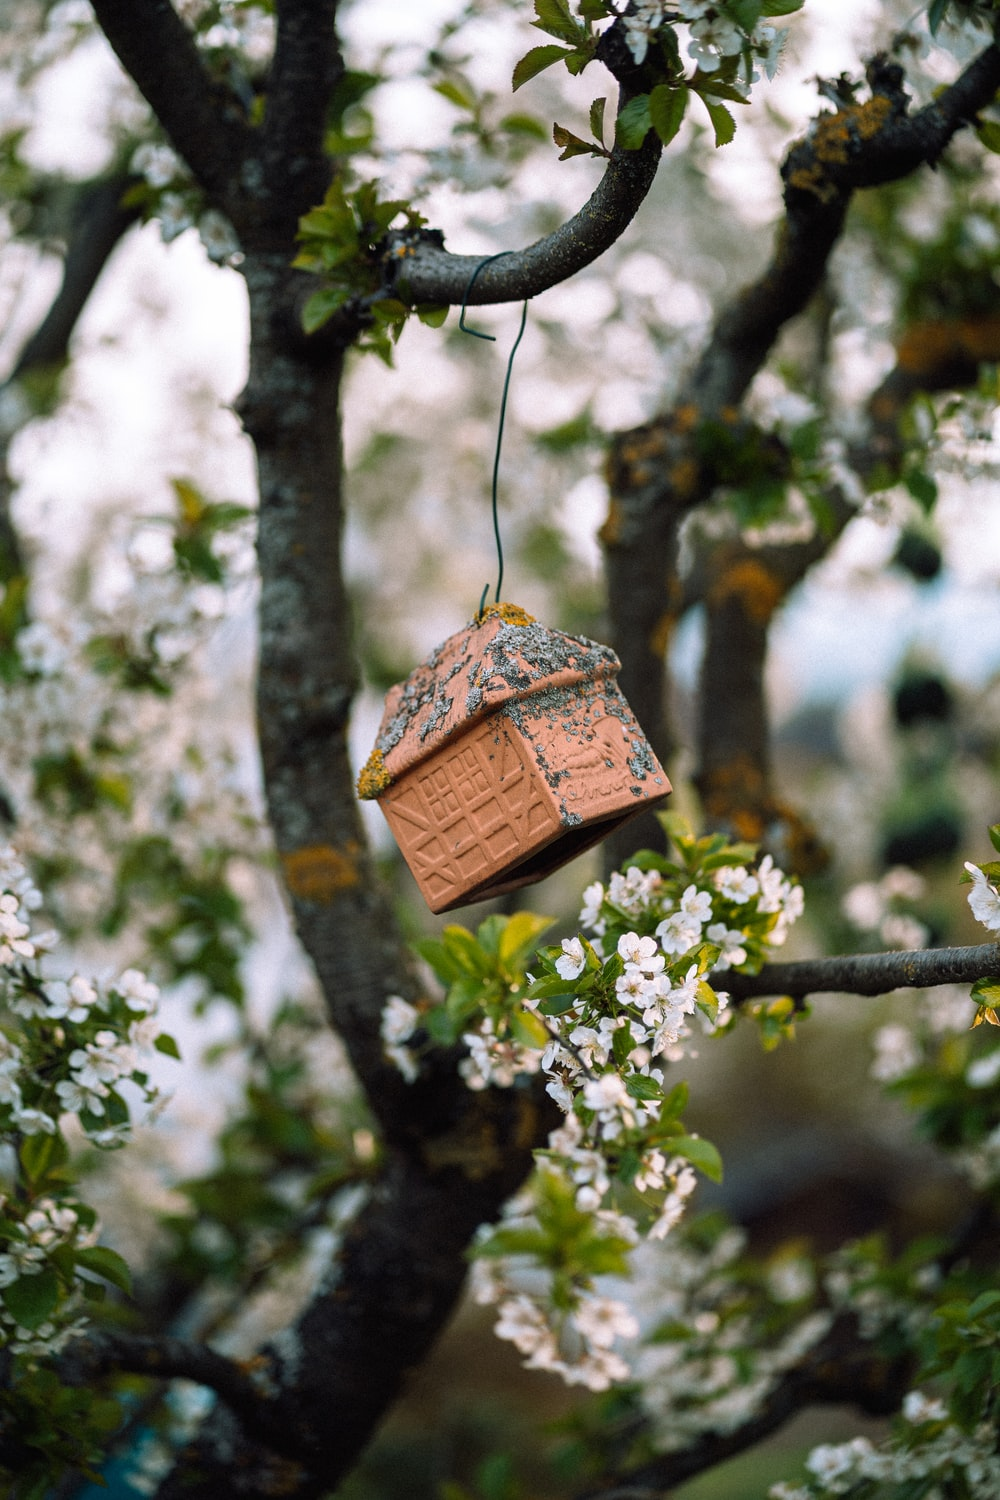 brown wooden bird house hanging on tree branch during daytime